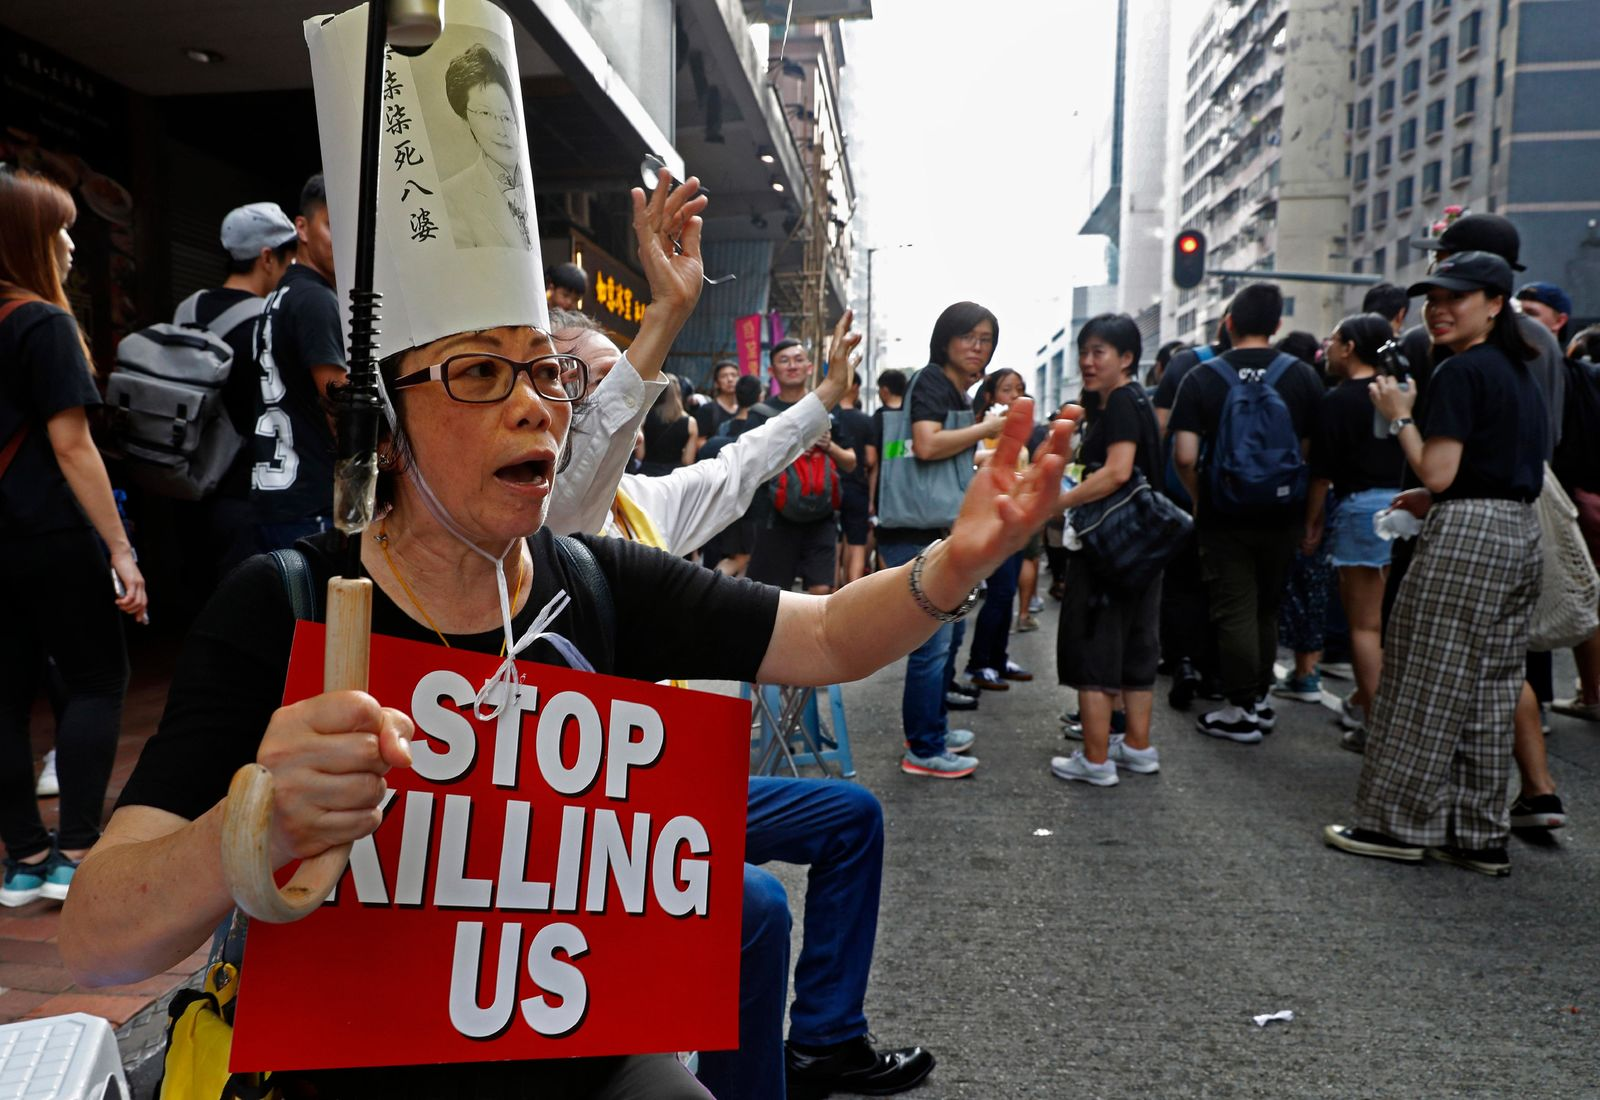 Protesters raise placards as they march on the streets against an extradition bill in Hong Kong on Sunday, June 16, 2019.